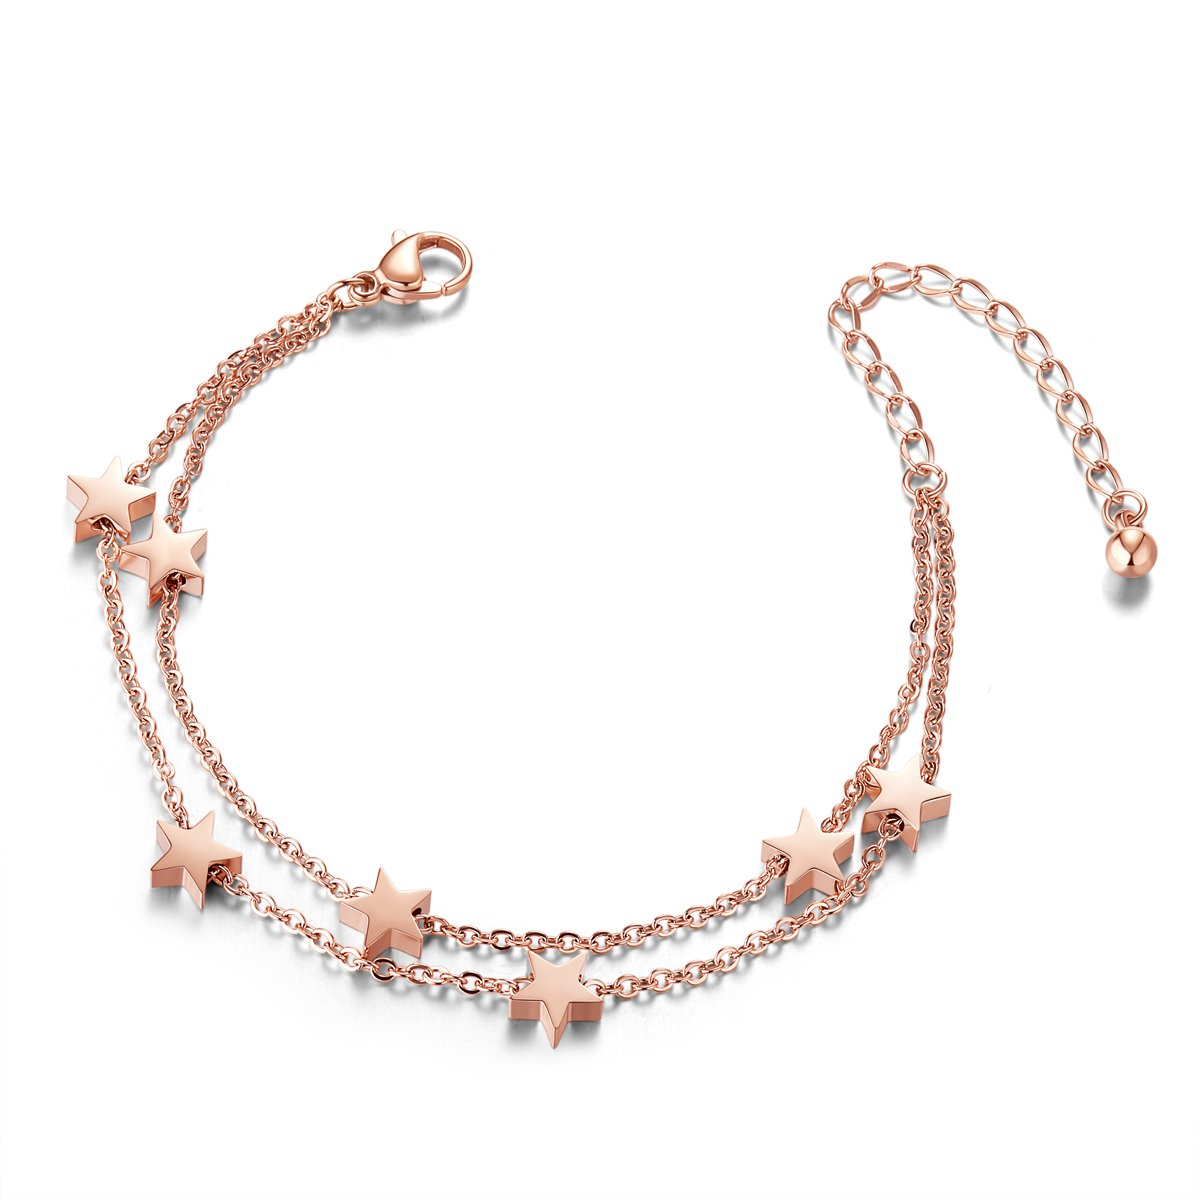 Sweetiee Titanium Steel Double Layered Anklet with Mini Stars Rose Gold 200mm for Woman JA42A